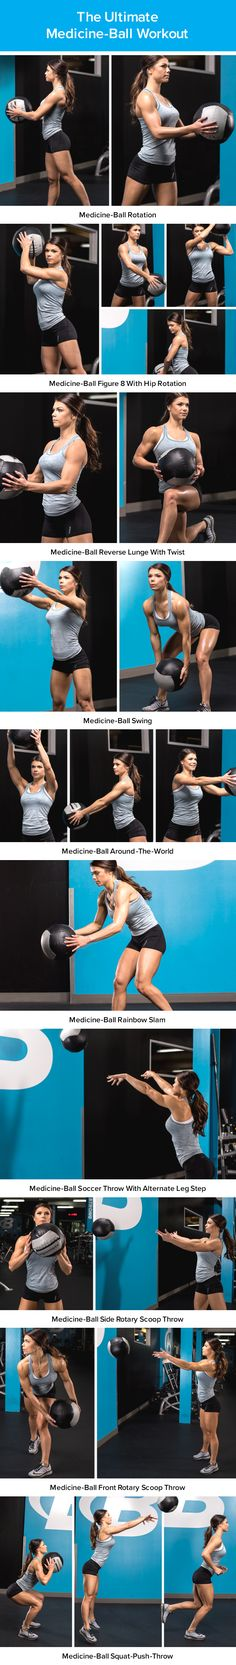 Med Ball Workout | Posted By: AdvancedWeightLossTips.com